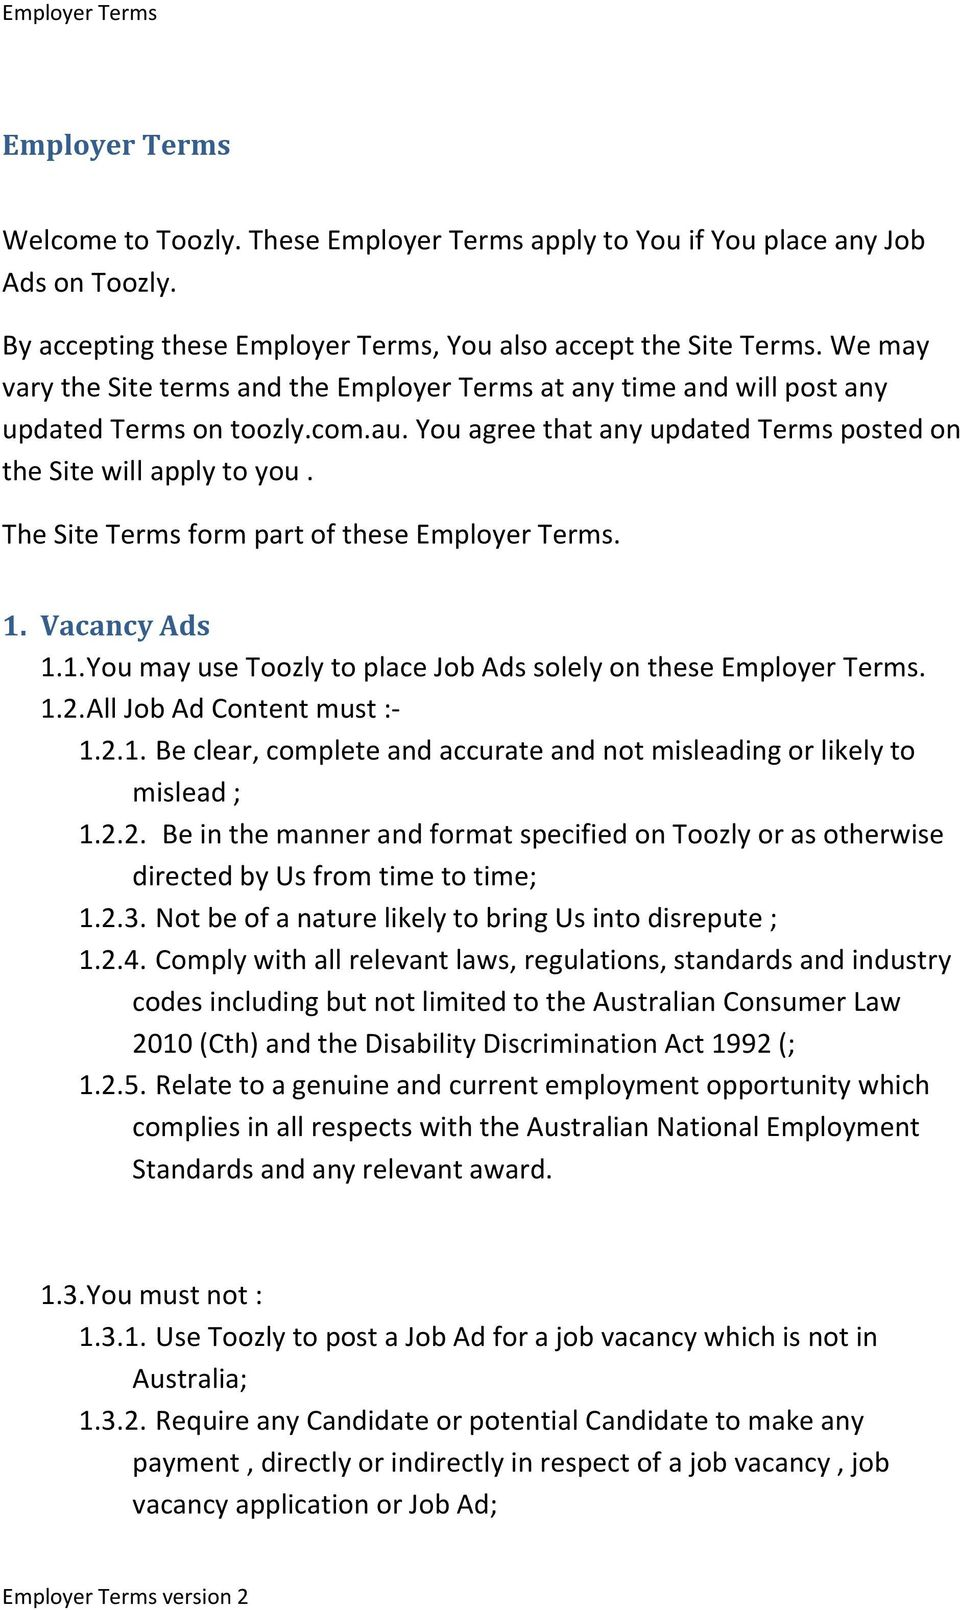 The Site Terms form part of these Employer Terms. 1. Vacancy Ads 1.1. You may use Toozly to place Job Ads solely on these Employer Terms. 1.2. All Job Ad Content must :- 1.2.1. Be clear, complete and accurate and not misleading or likely to mislead ; 1.